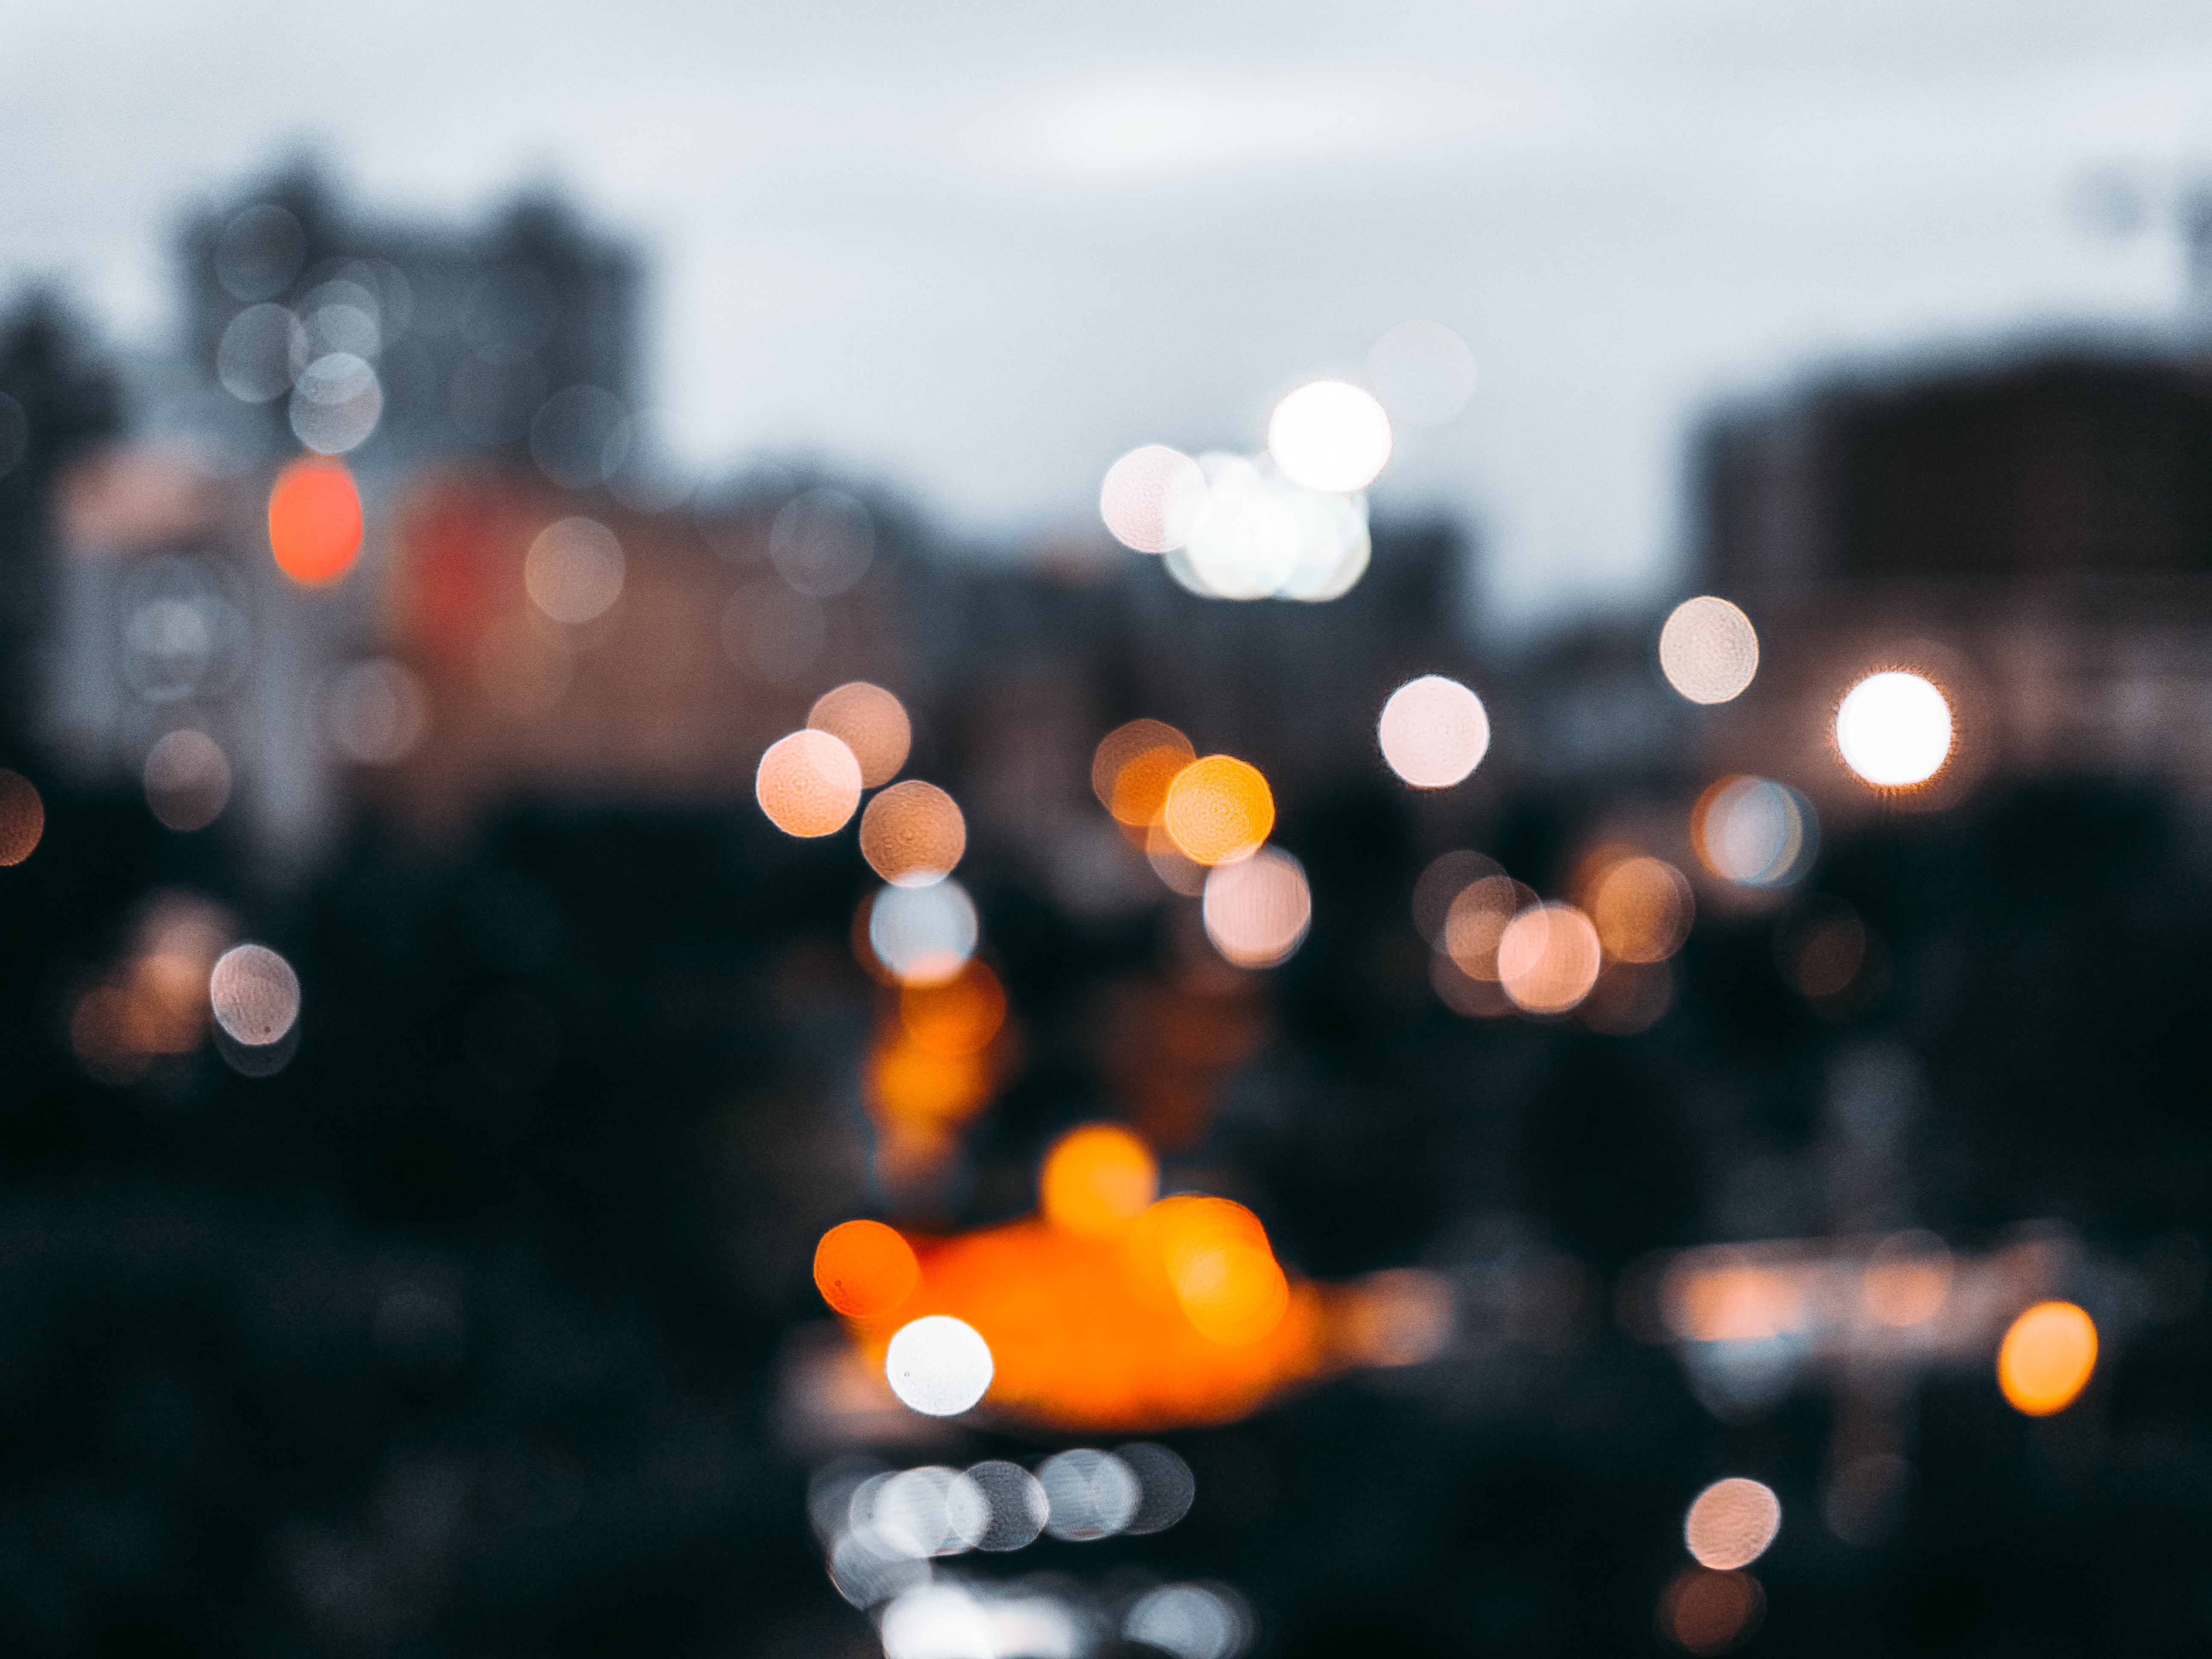 bokeh light photography of orange, white, and yellow lights